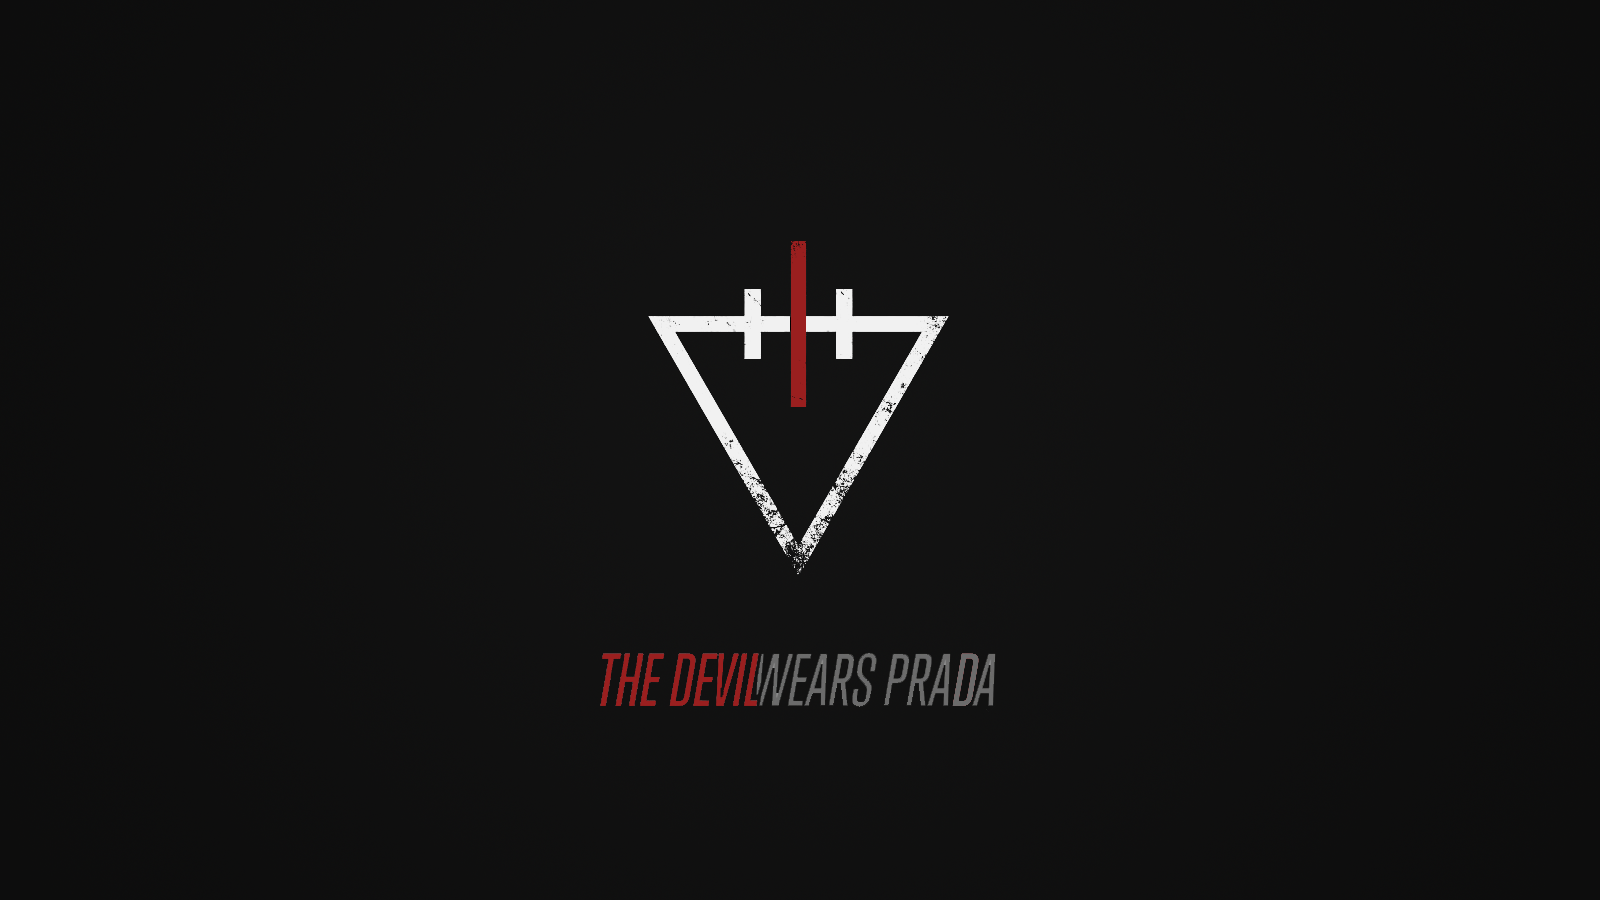 the devil wears prada band wallpaper #22